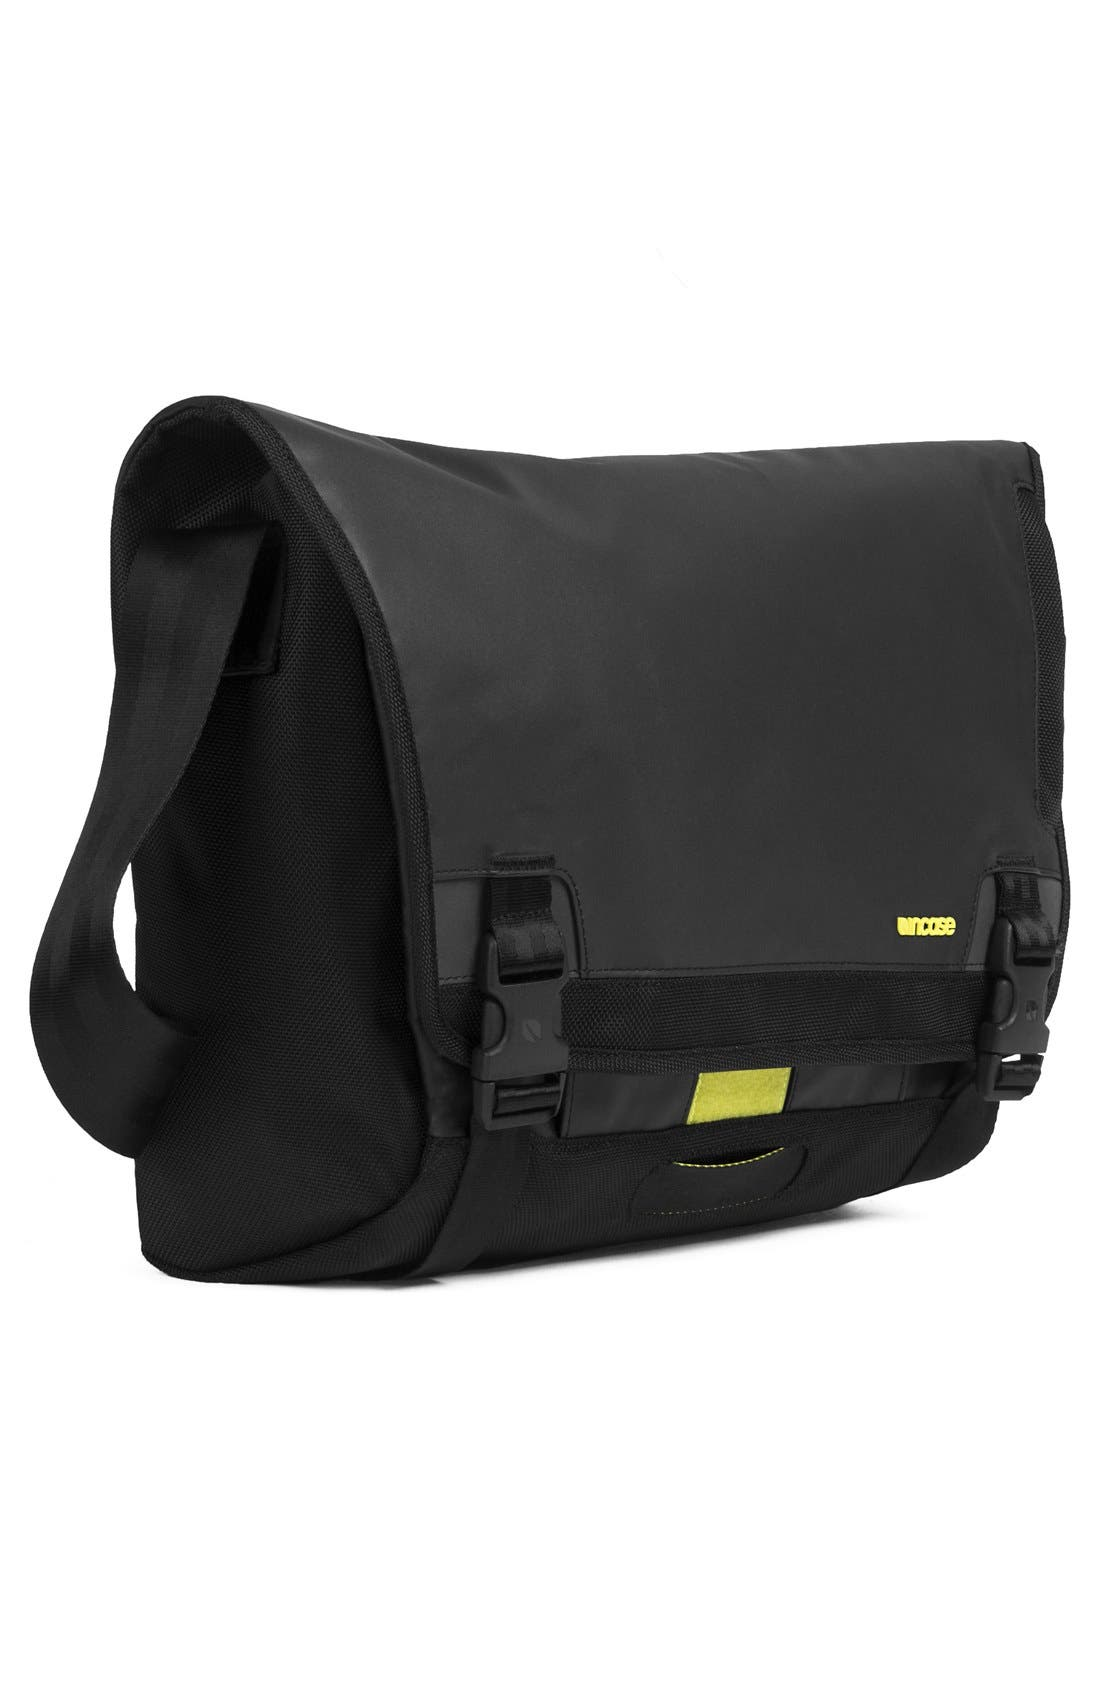 Alternate Image 2  - Incase Designs 'Range' Messenger Bag